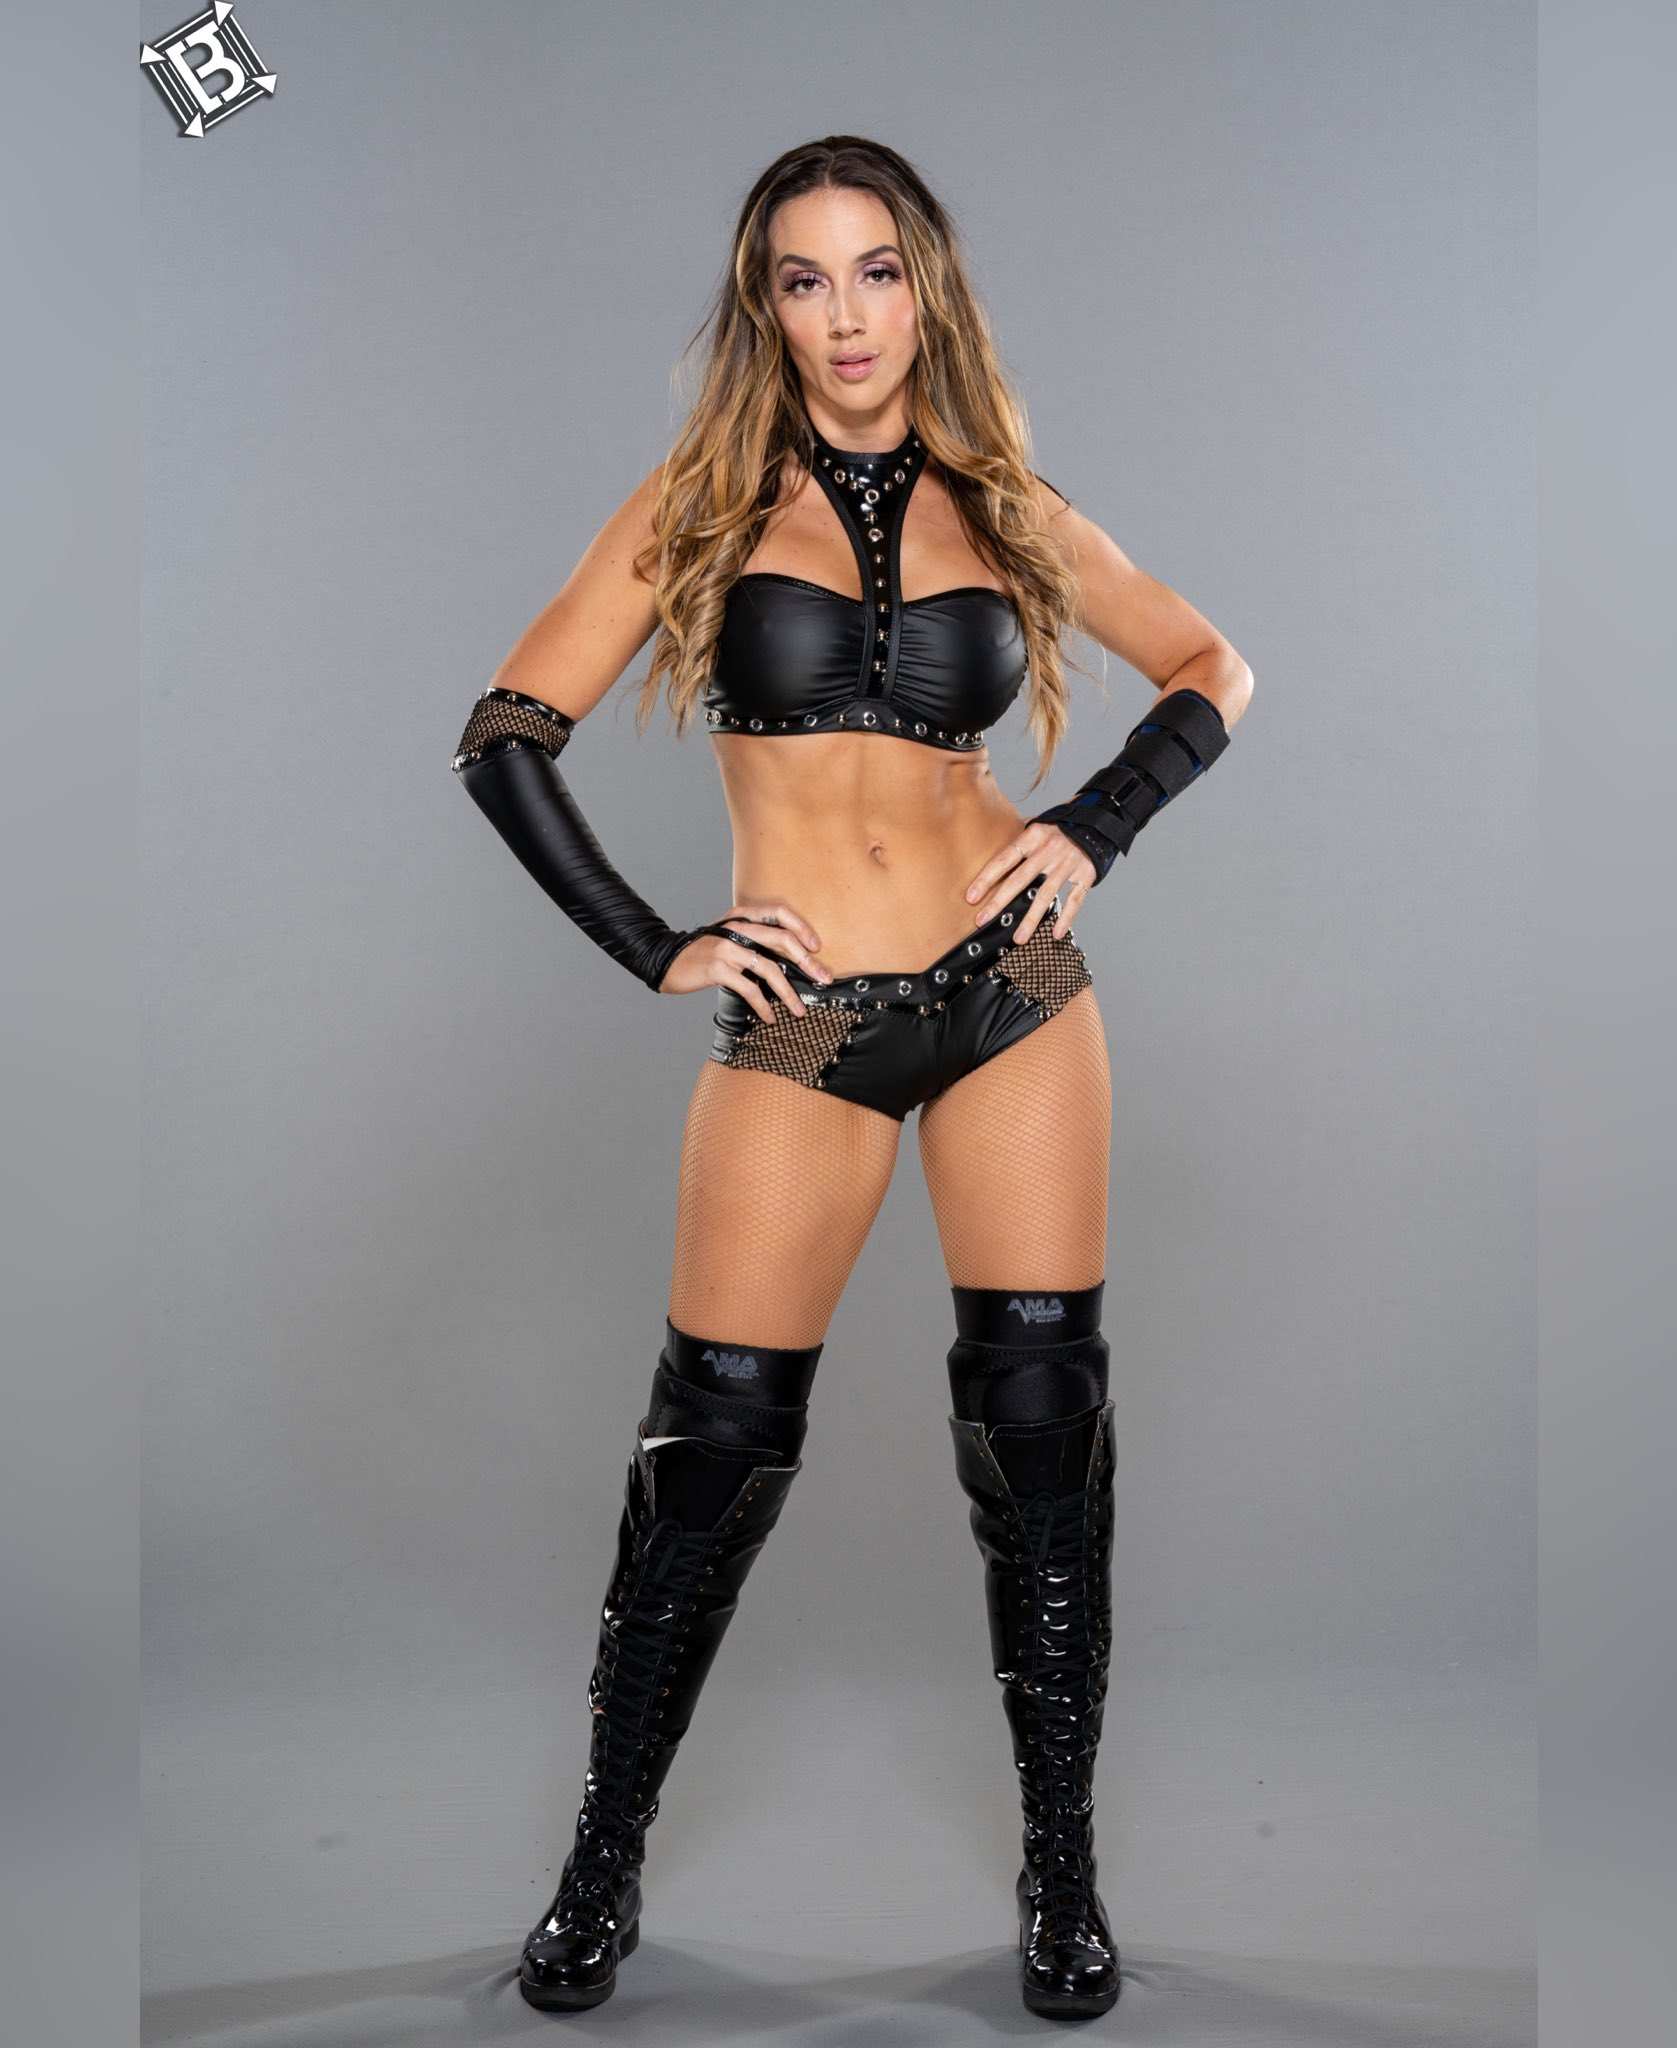 Chelsea Green Pays Homage To WWE Legends The Bella Twins 77